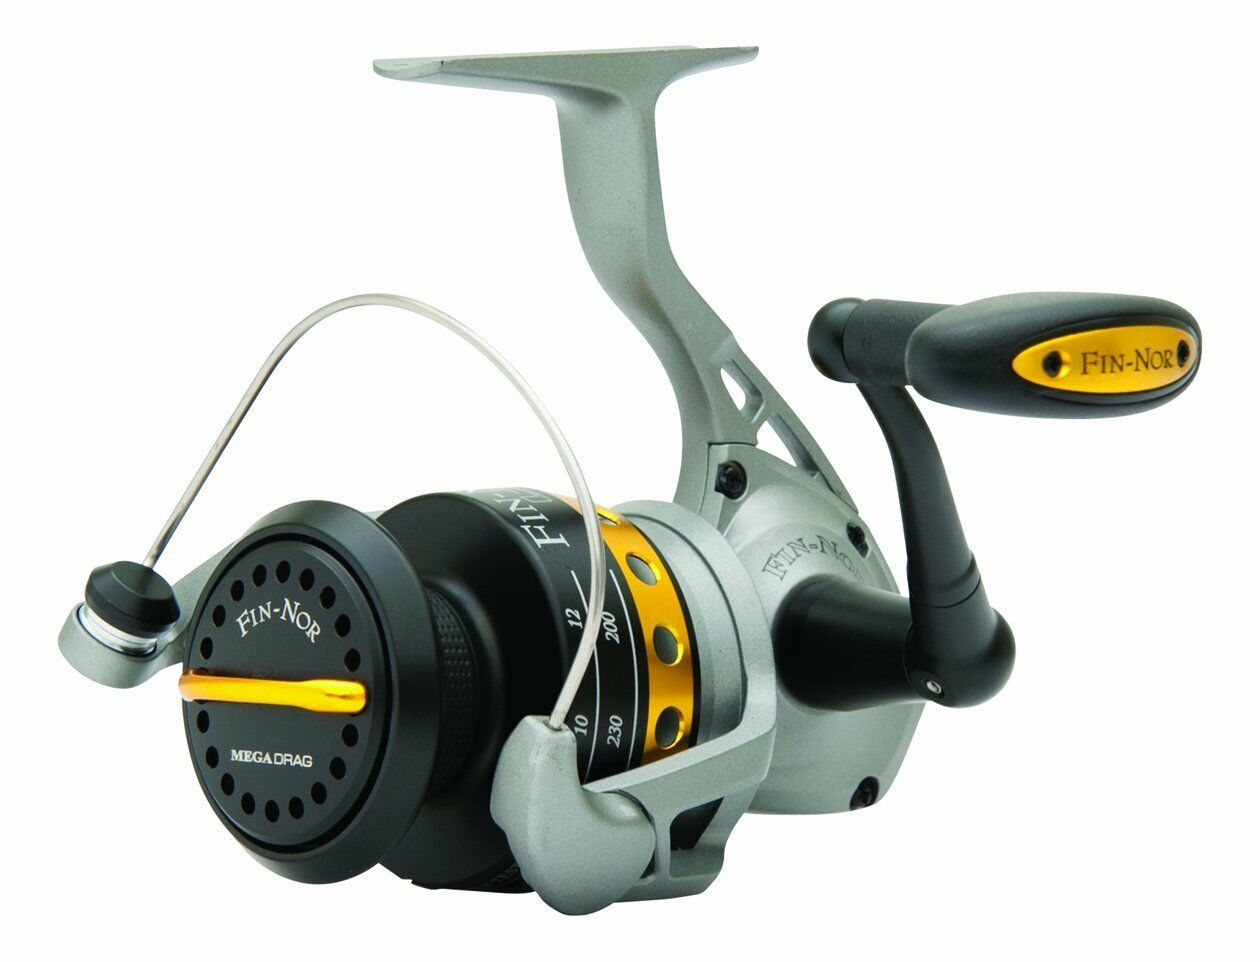 NEW Drag Fin-Nor Lethal Spinning Reel 310/100LB Braid 4.9:1 45lbs Drag NEW LT100 50cea0